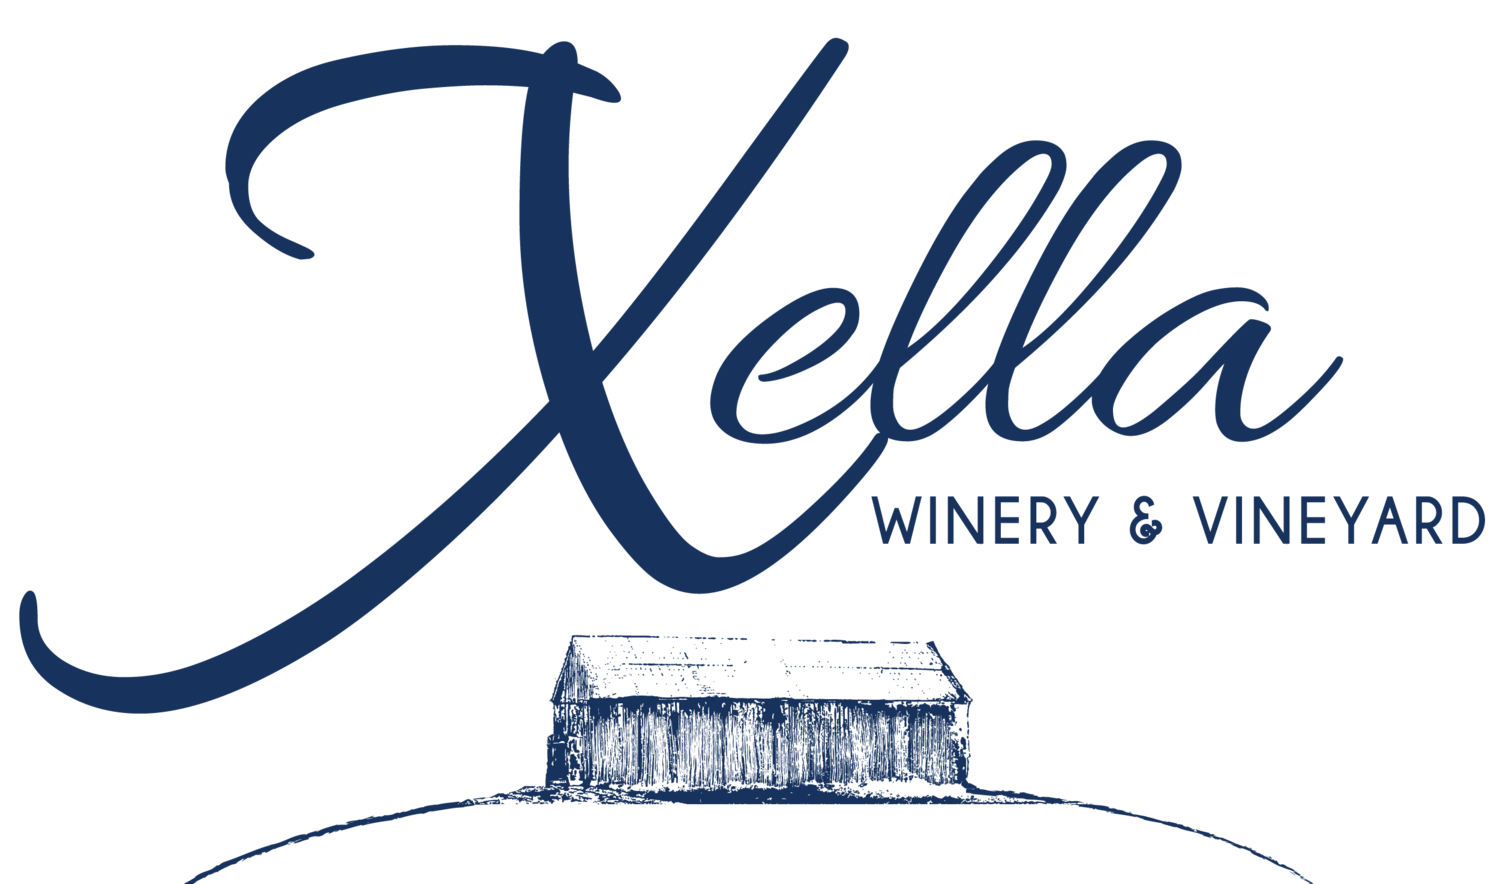 Xella Winery and Vineyard